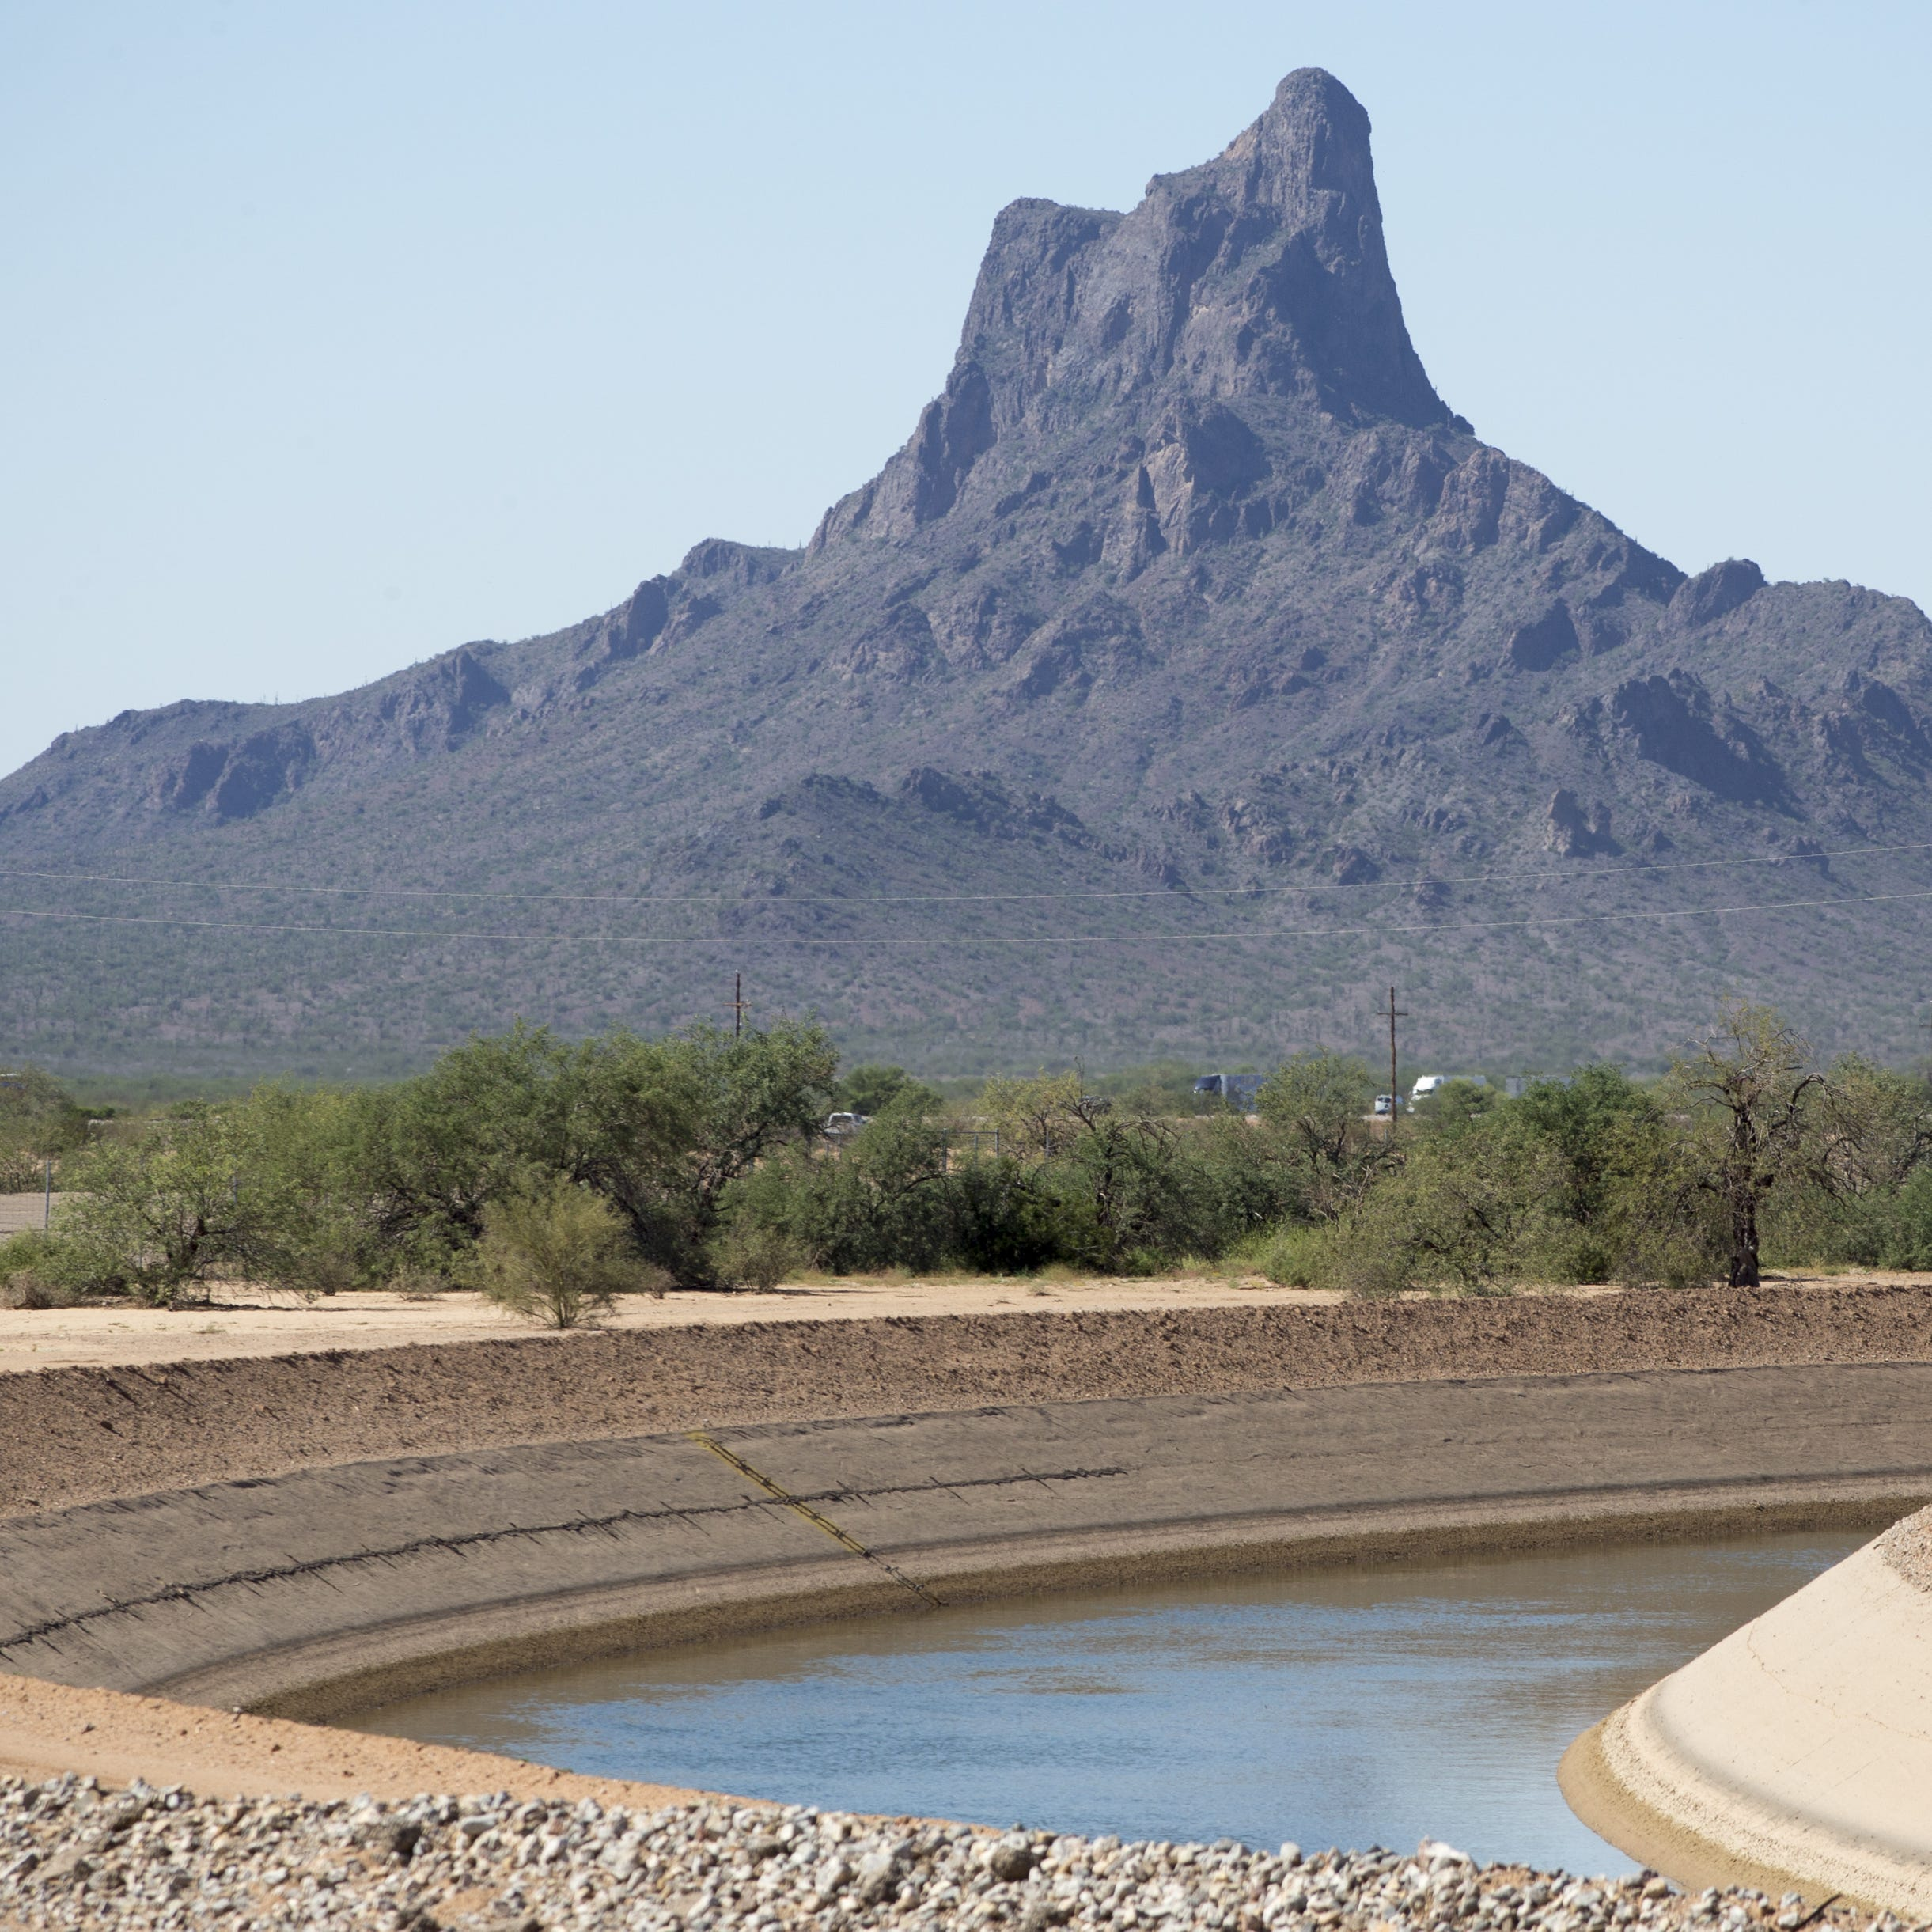 'A recipe for disaster': Pinal County might not have enough water for 139,000 planned homes